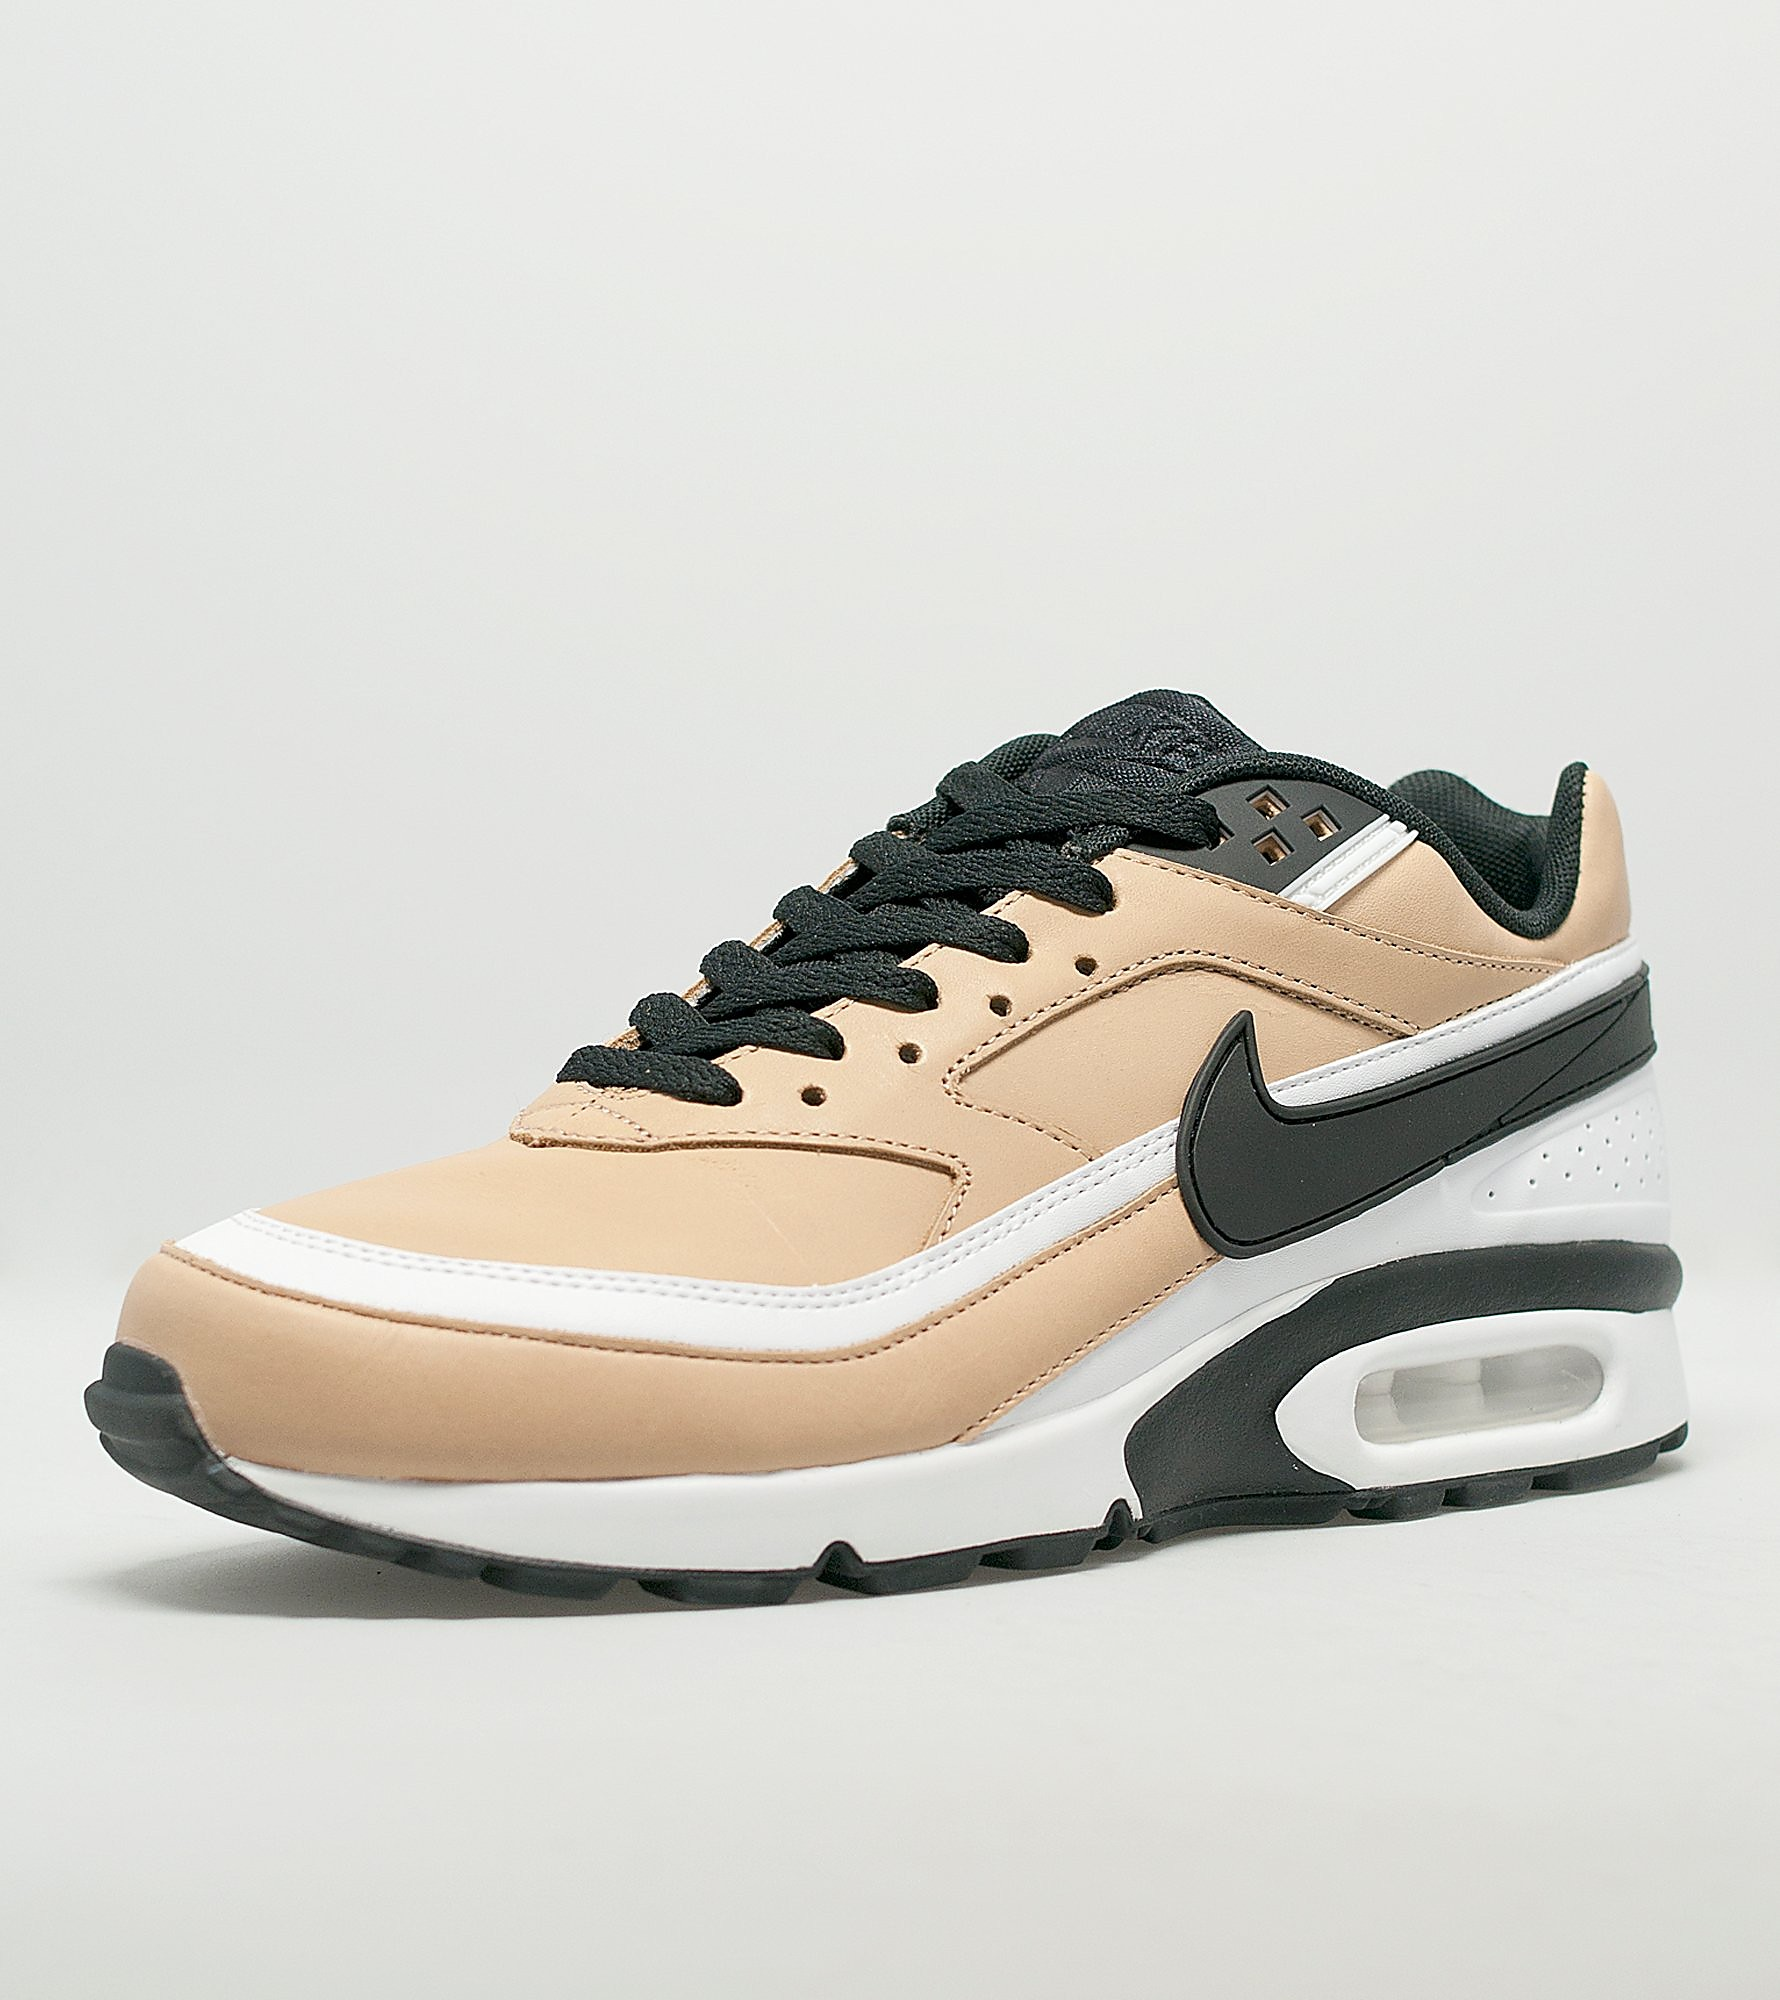 Nike Air Max BW Vachetta - European Exclusive